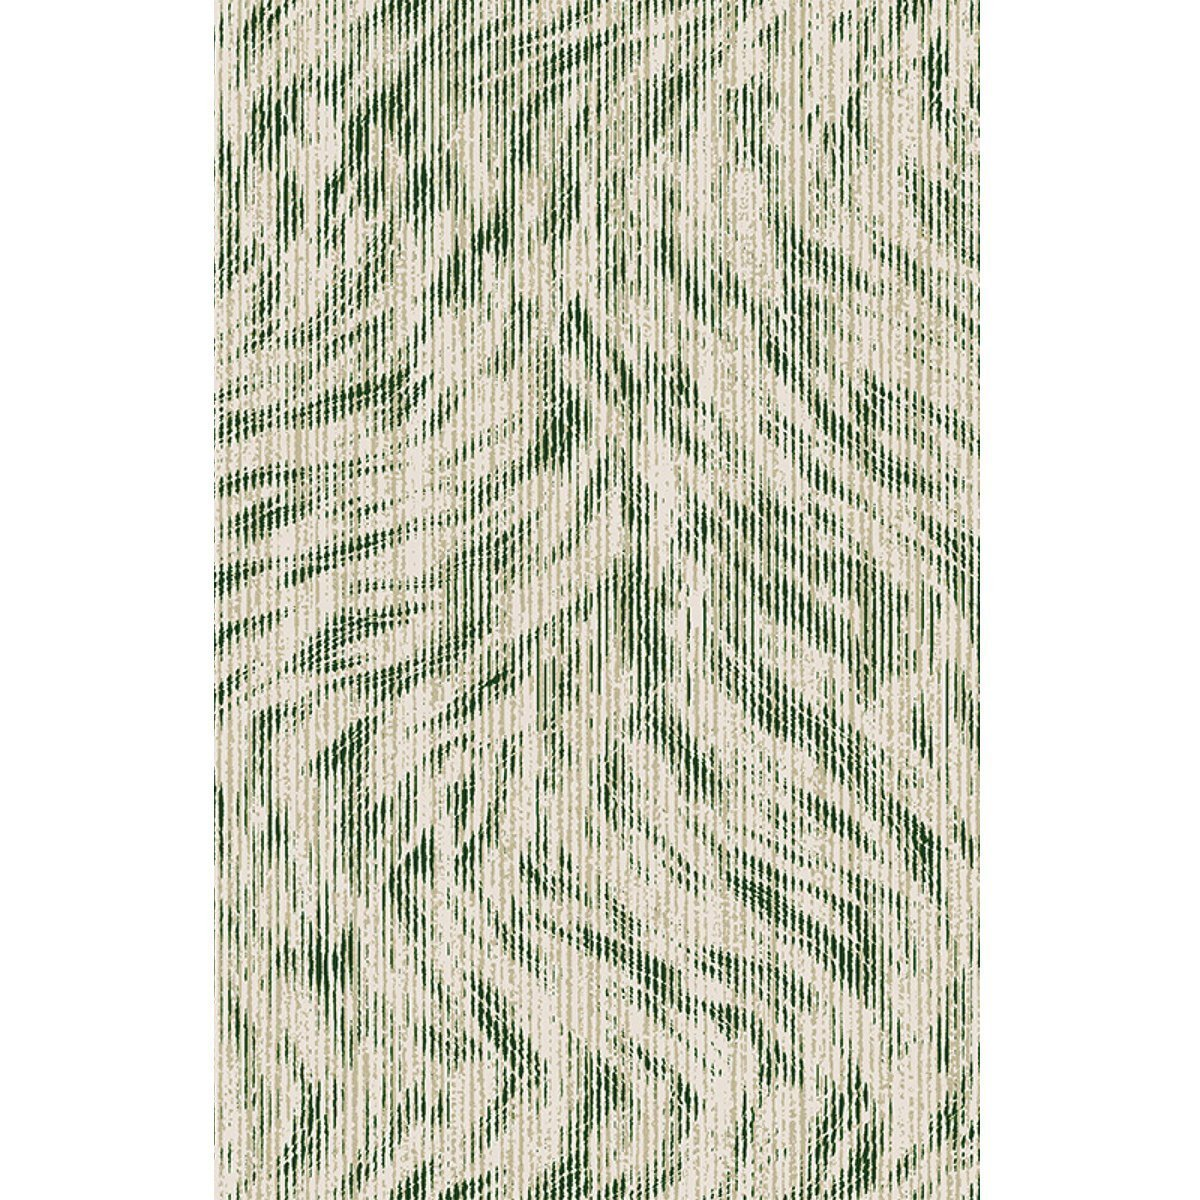 Moooi Blushing Sloth Behang Moss - 6 meter